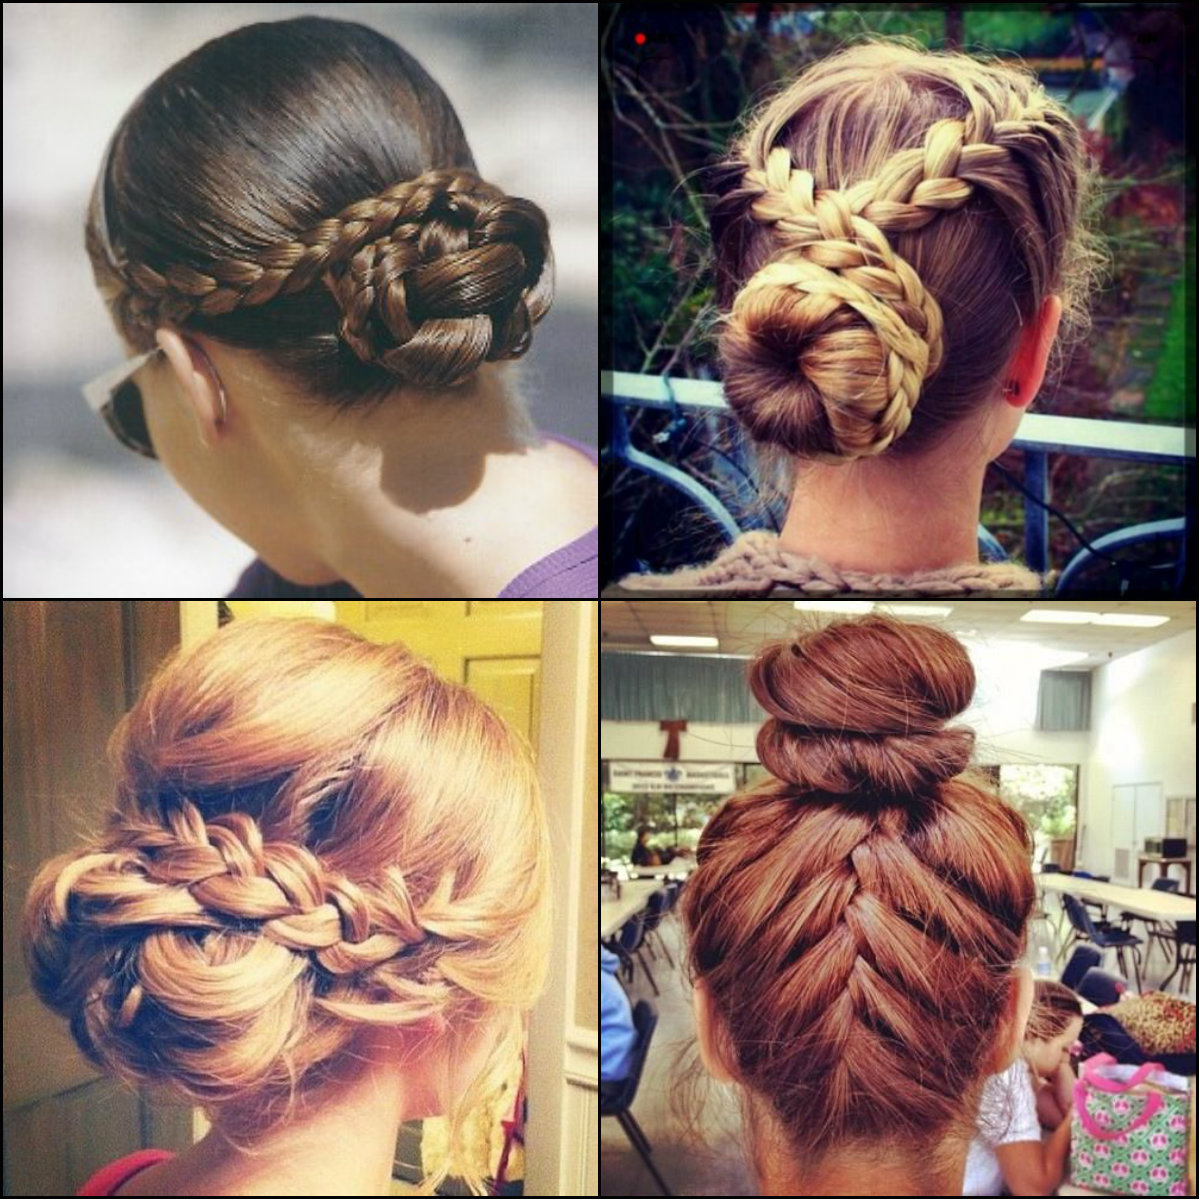 Braided Bun Hairstyles To Look Cool & Nice